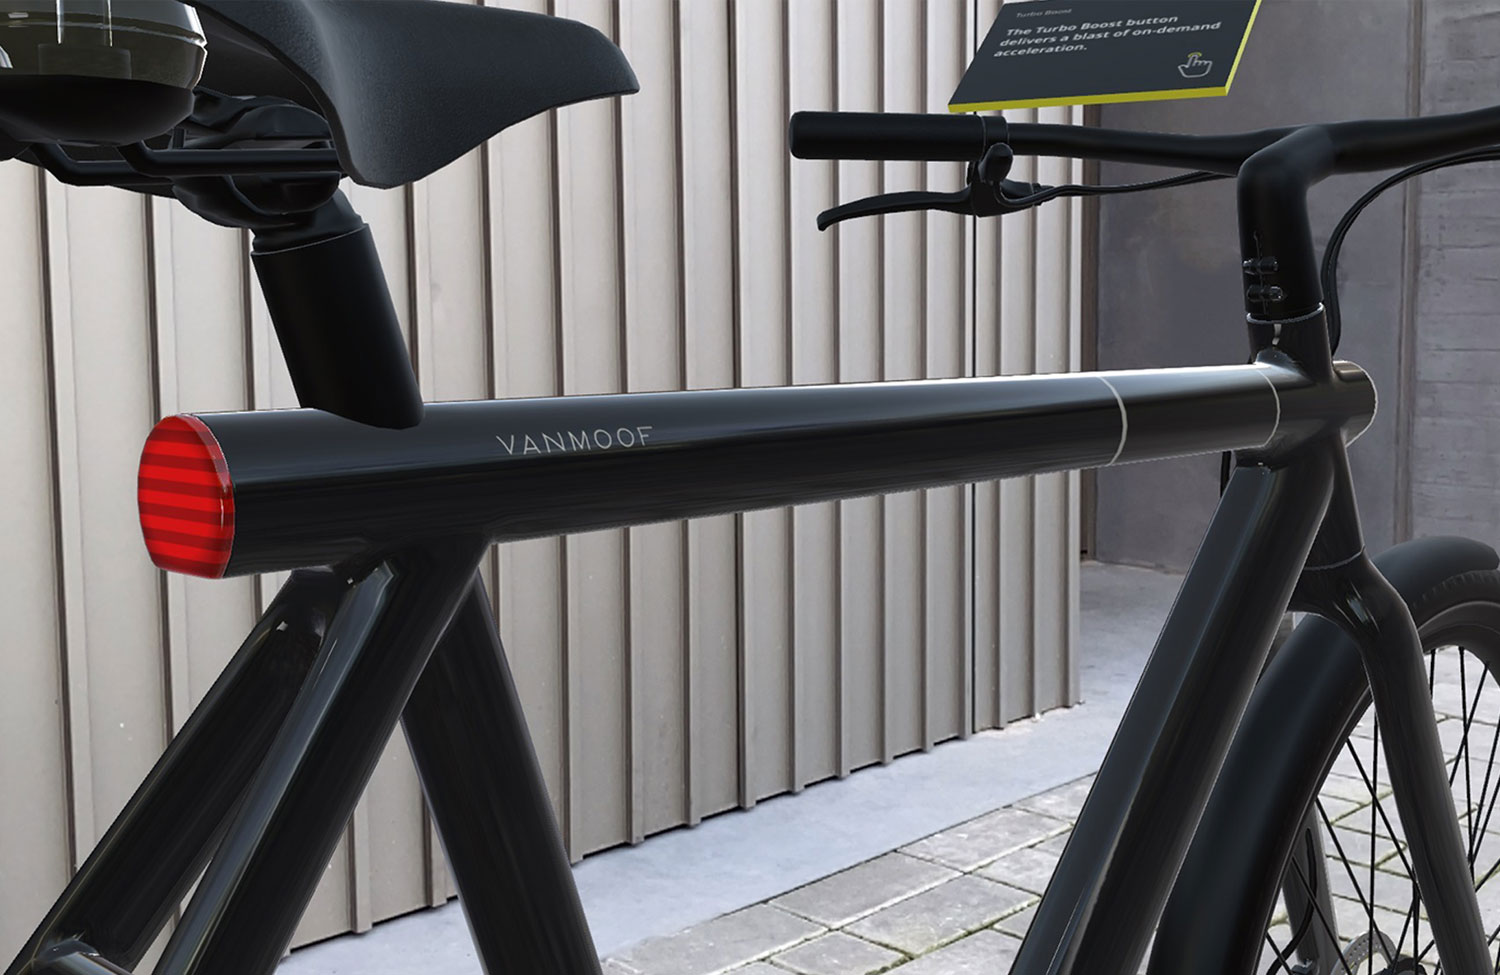 VanMoof Electrified: Virtual shopping experience thanks to Augmented Reality